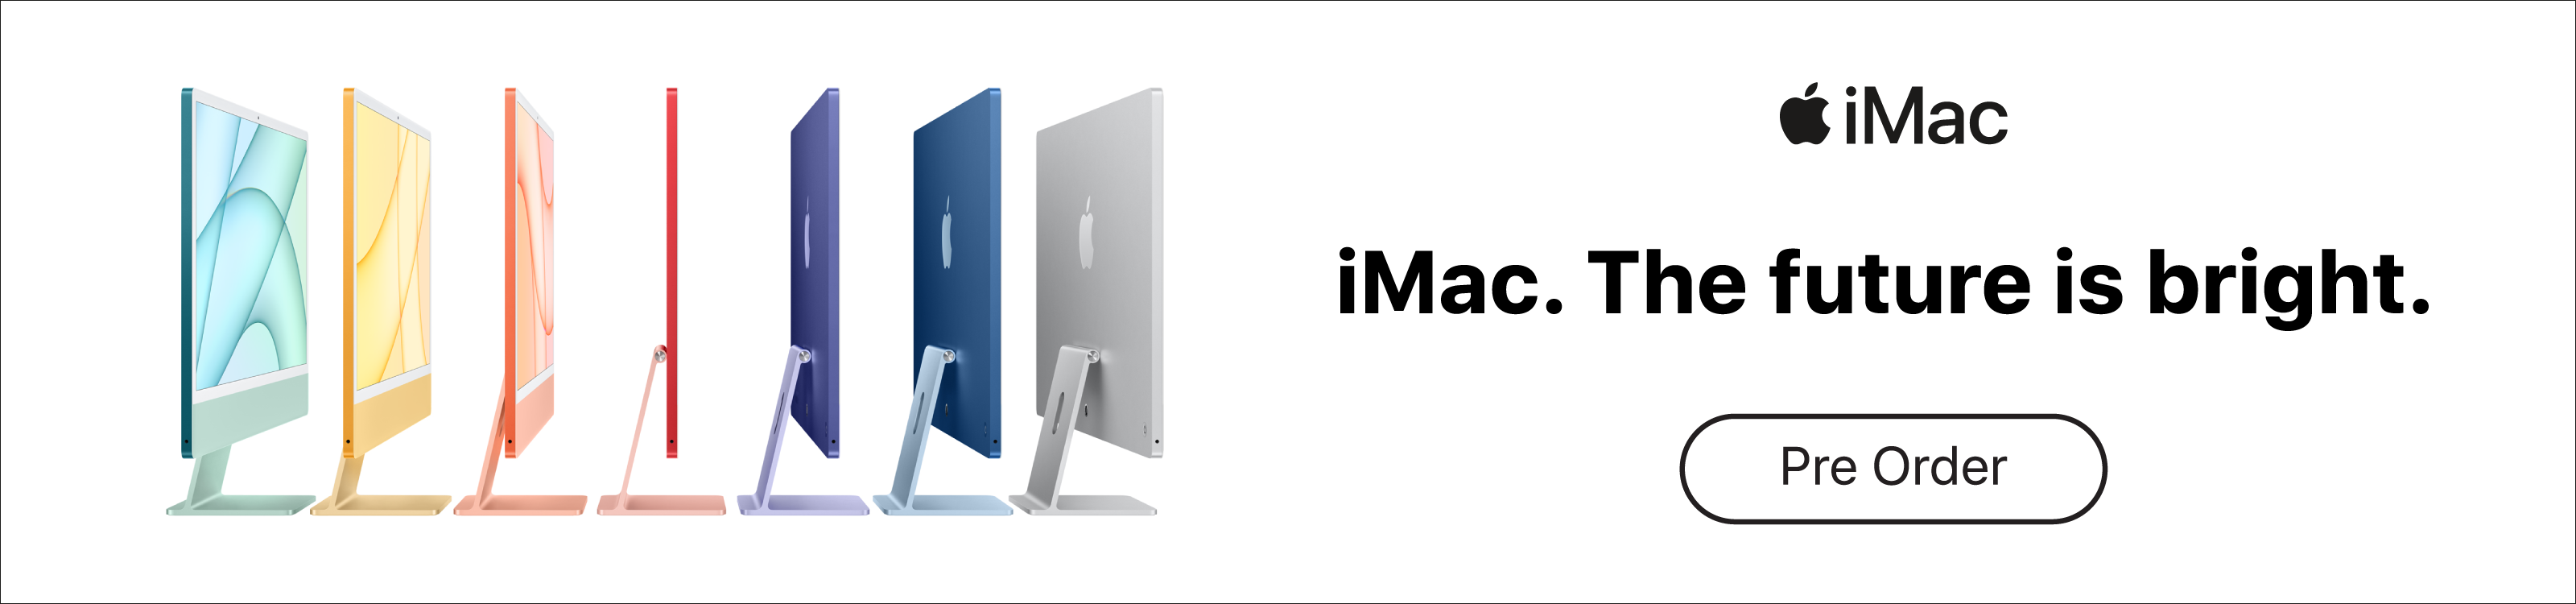 New Apple iMac - Pre Order Now